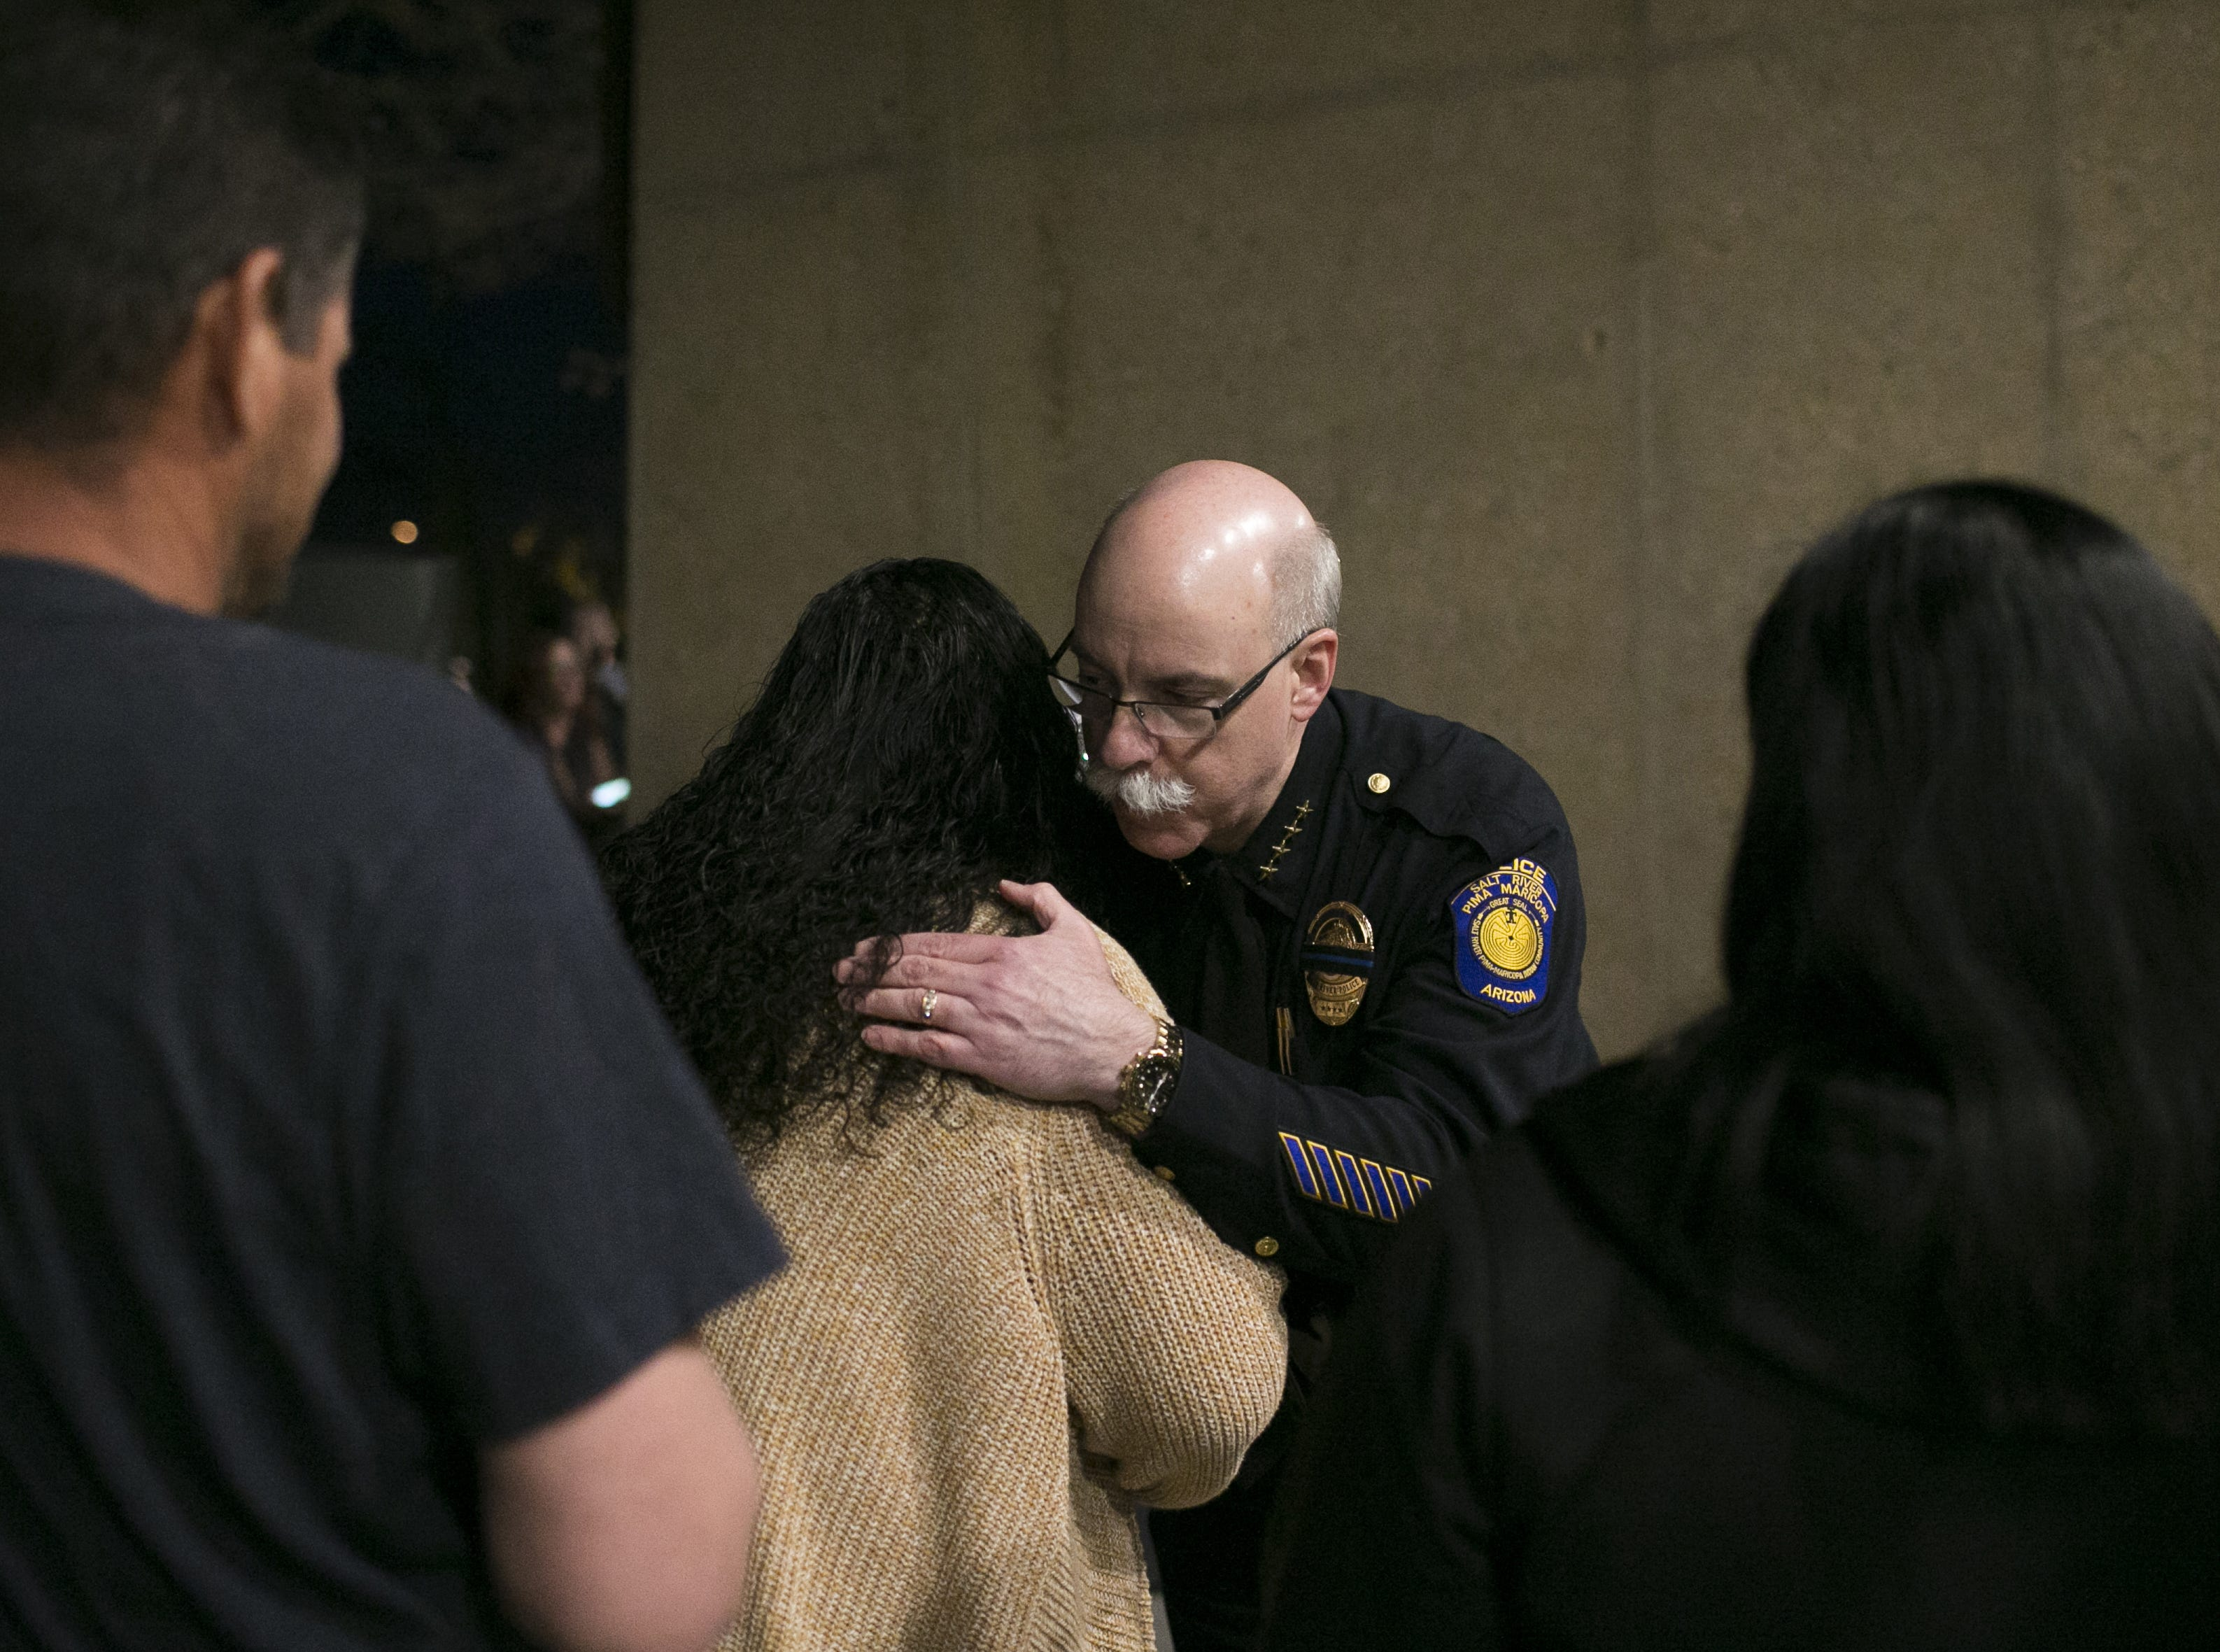 Salt River Police Chief Karl Auerbach comforts people attending a vigil to remember Salt River tribal police Officer Clayton Townsend at Two Waters Courtyard in Scottsdale on Jan. 11, 2019.